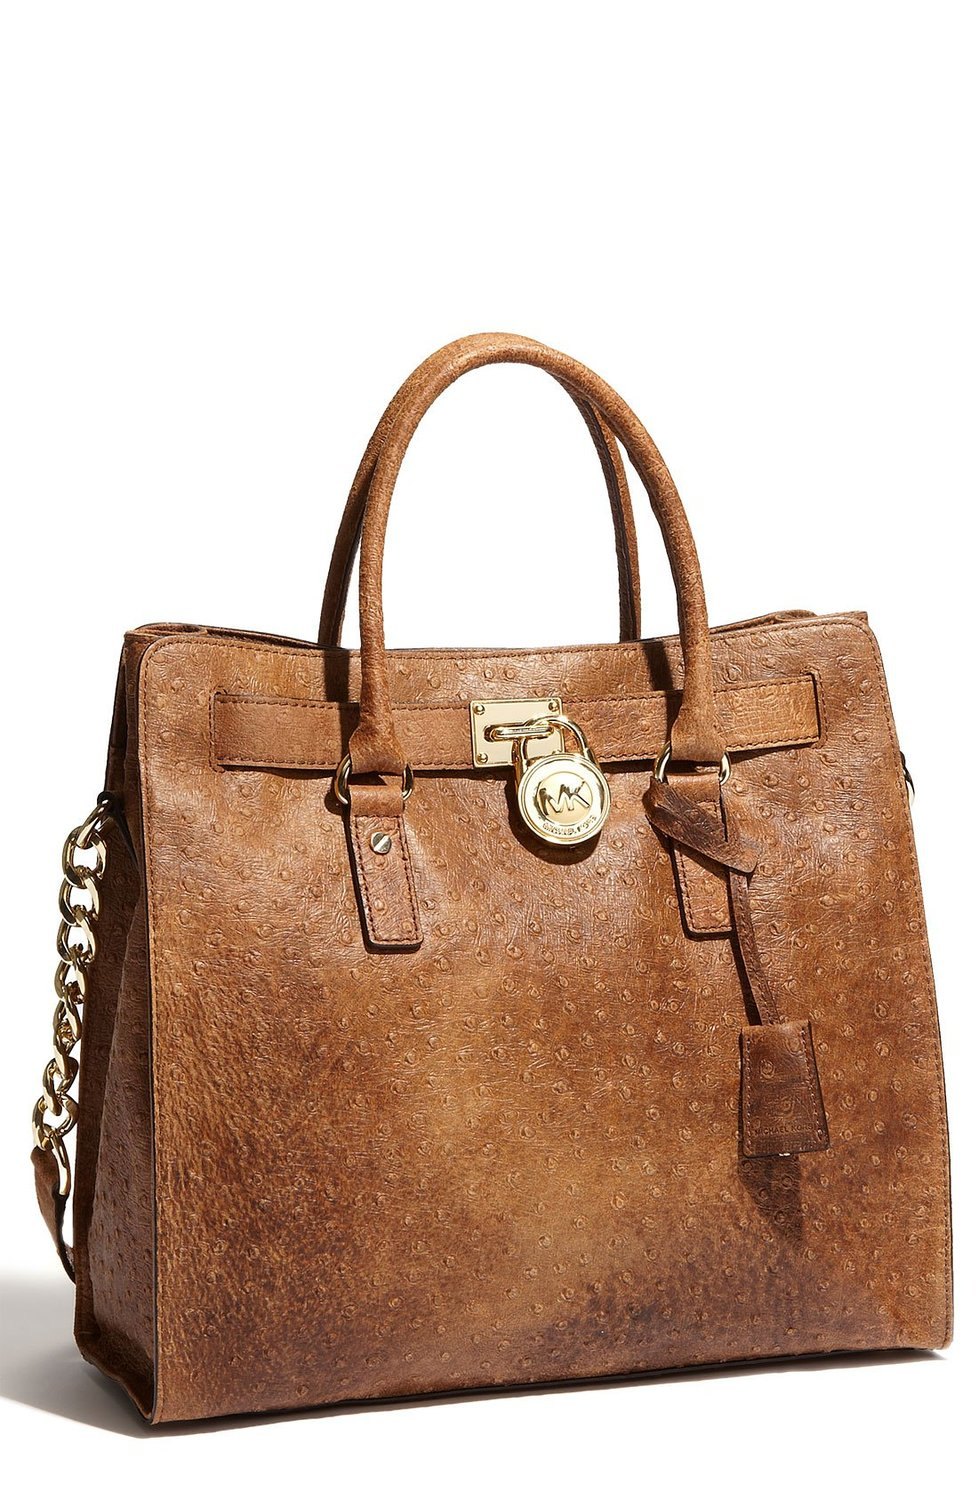 Michael kors mocha brown ostrich embossed leather hamilton ns large satchel tote: handbags: amazon.com